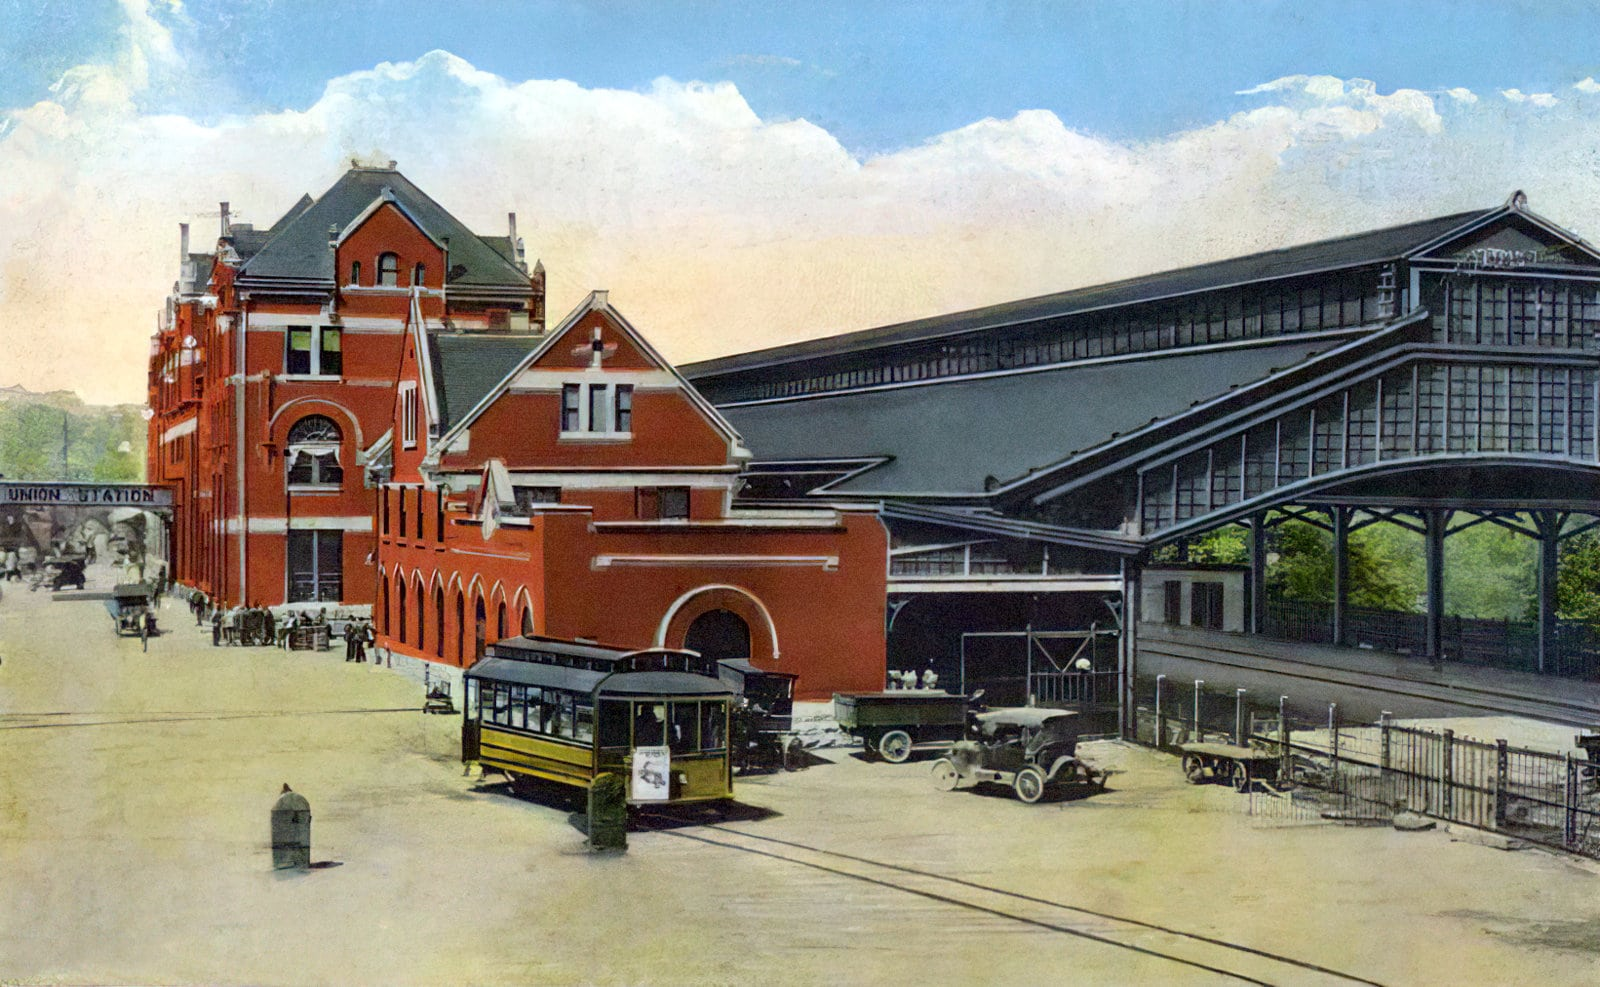 Old train station - Union Station in Montgomery Alabama